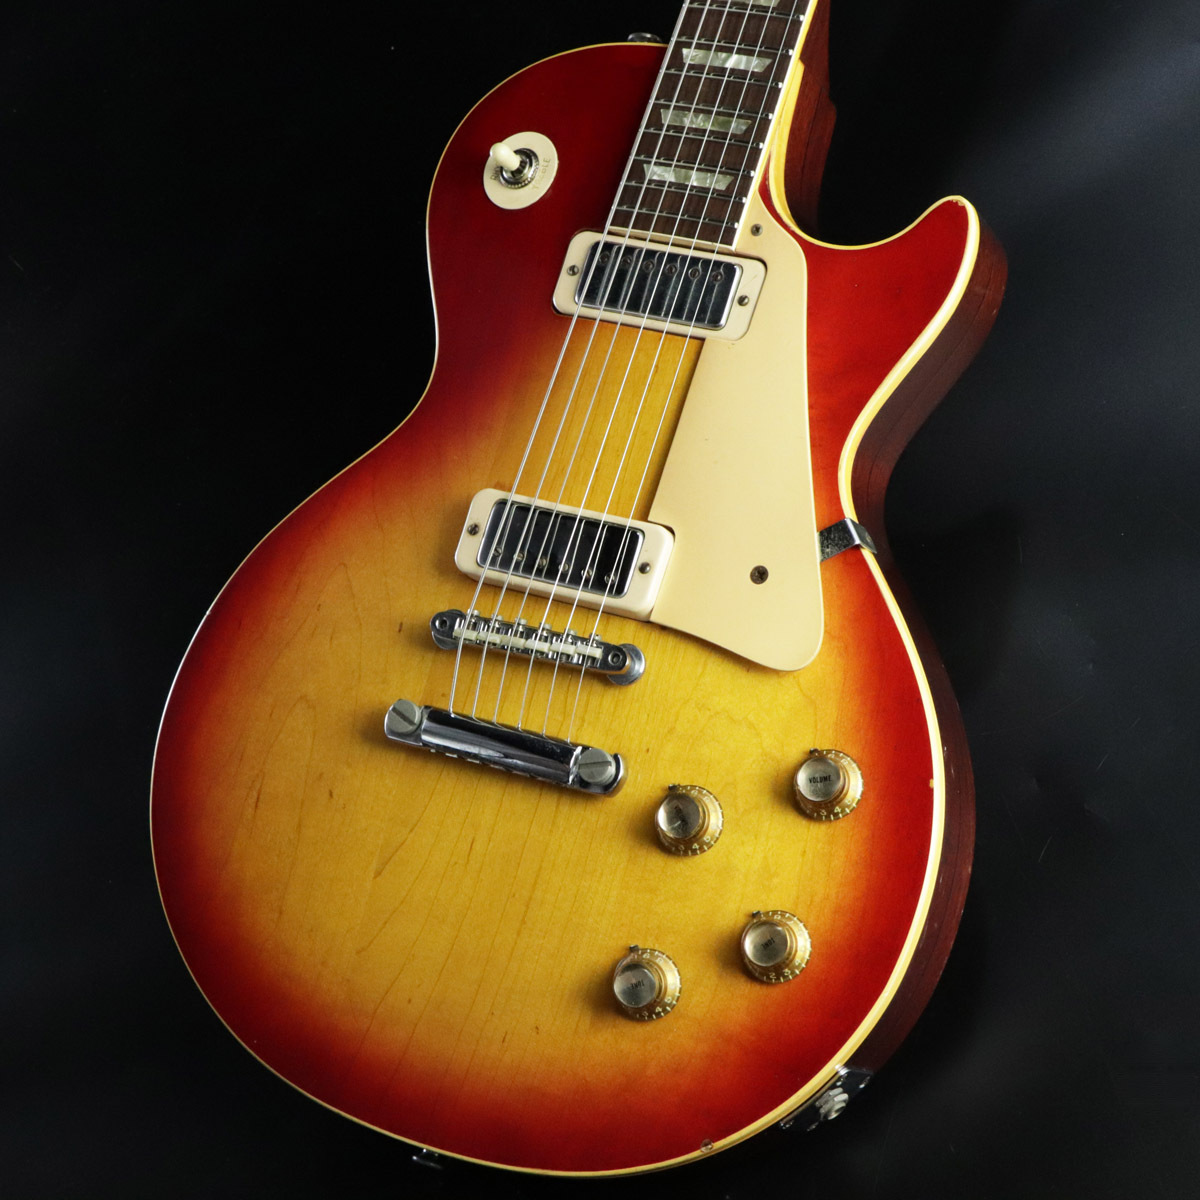 Gibson Les Paul Deluxe Cherry Sunburst